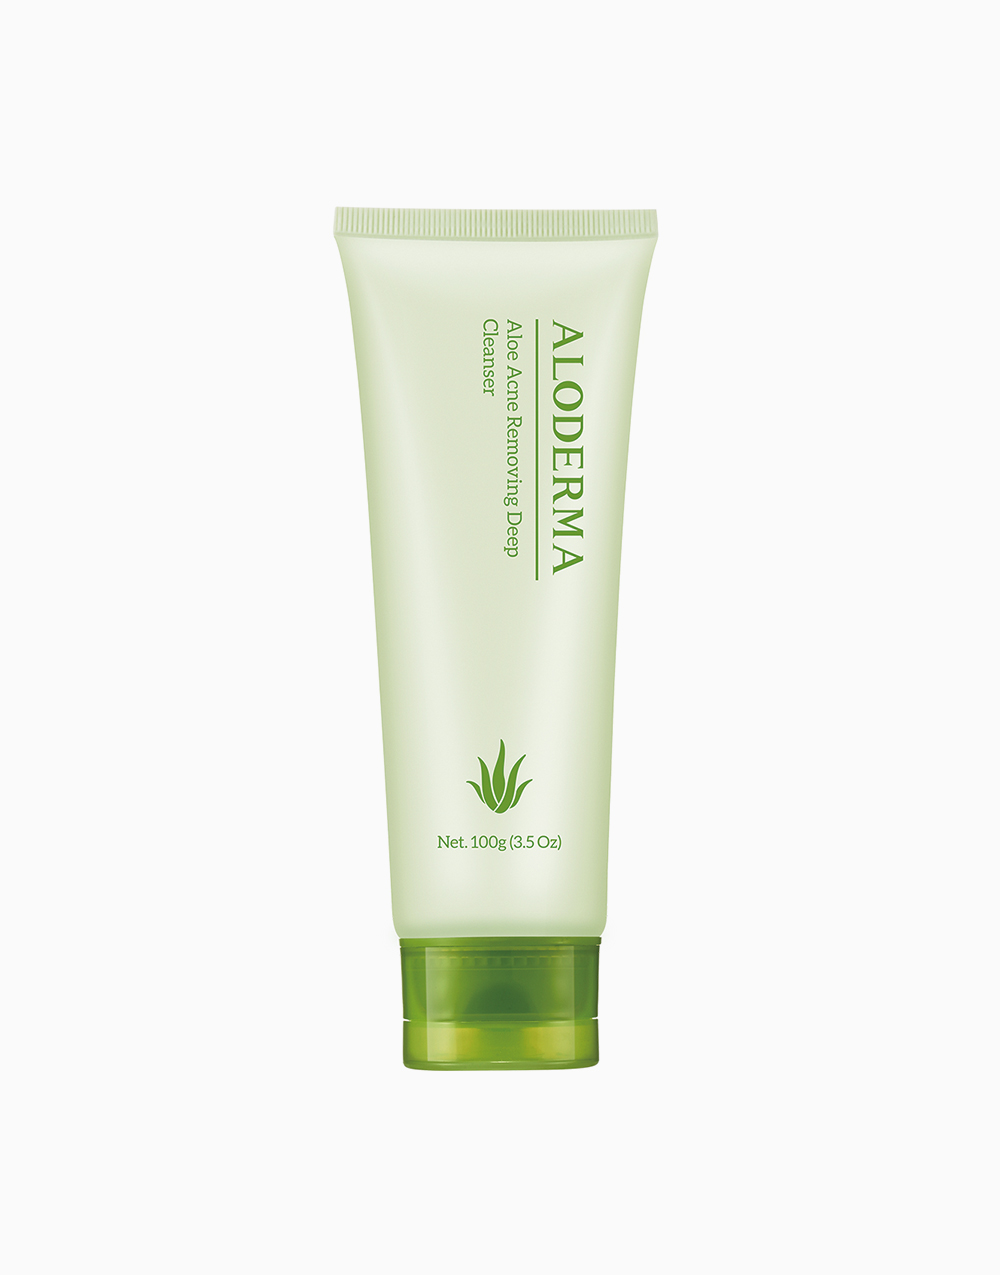 Acne Removing Deep Cleanser by Aloderma